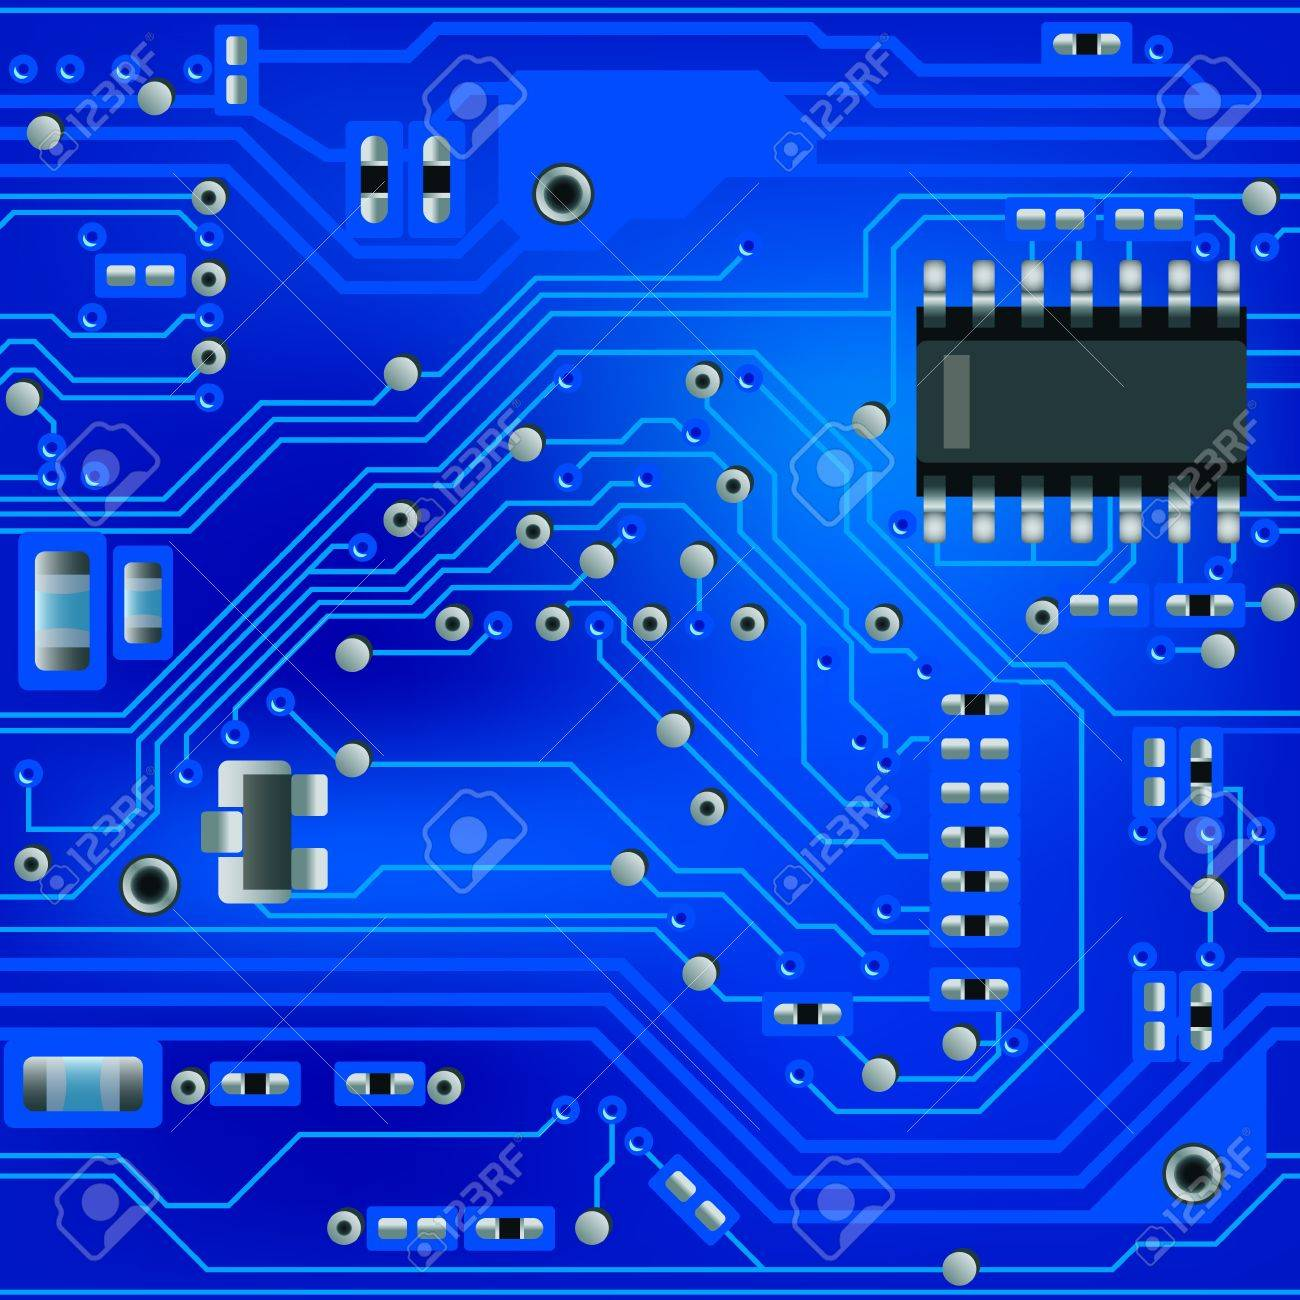 Seamless abstract blue circuit board pattern - 9566124